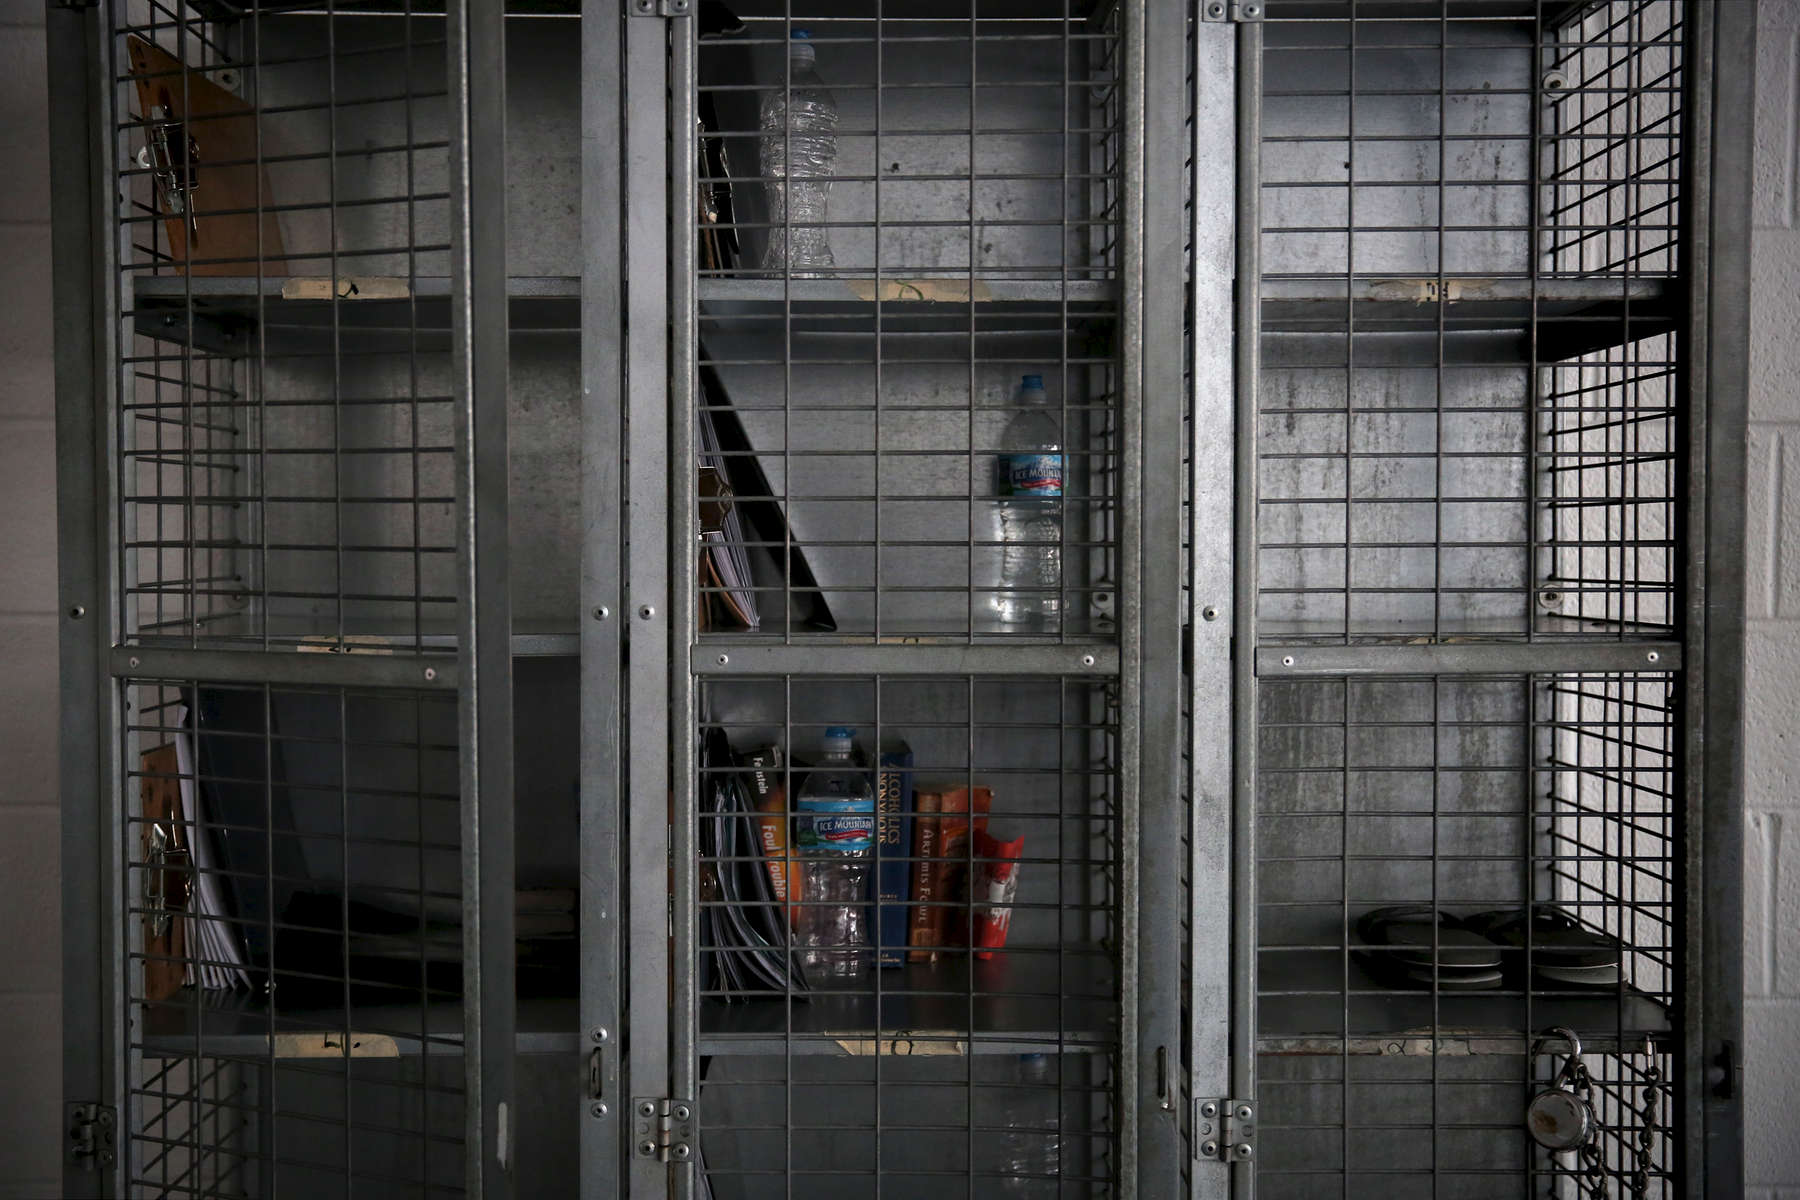 A wire locker sits in one of the boys' living quarters at Wolverine Human Services in Vassar, Mich. At night the residents' sneakers are locked up here to discourage running away.